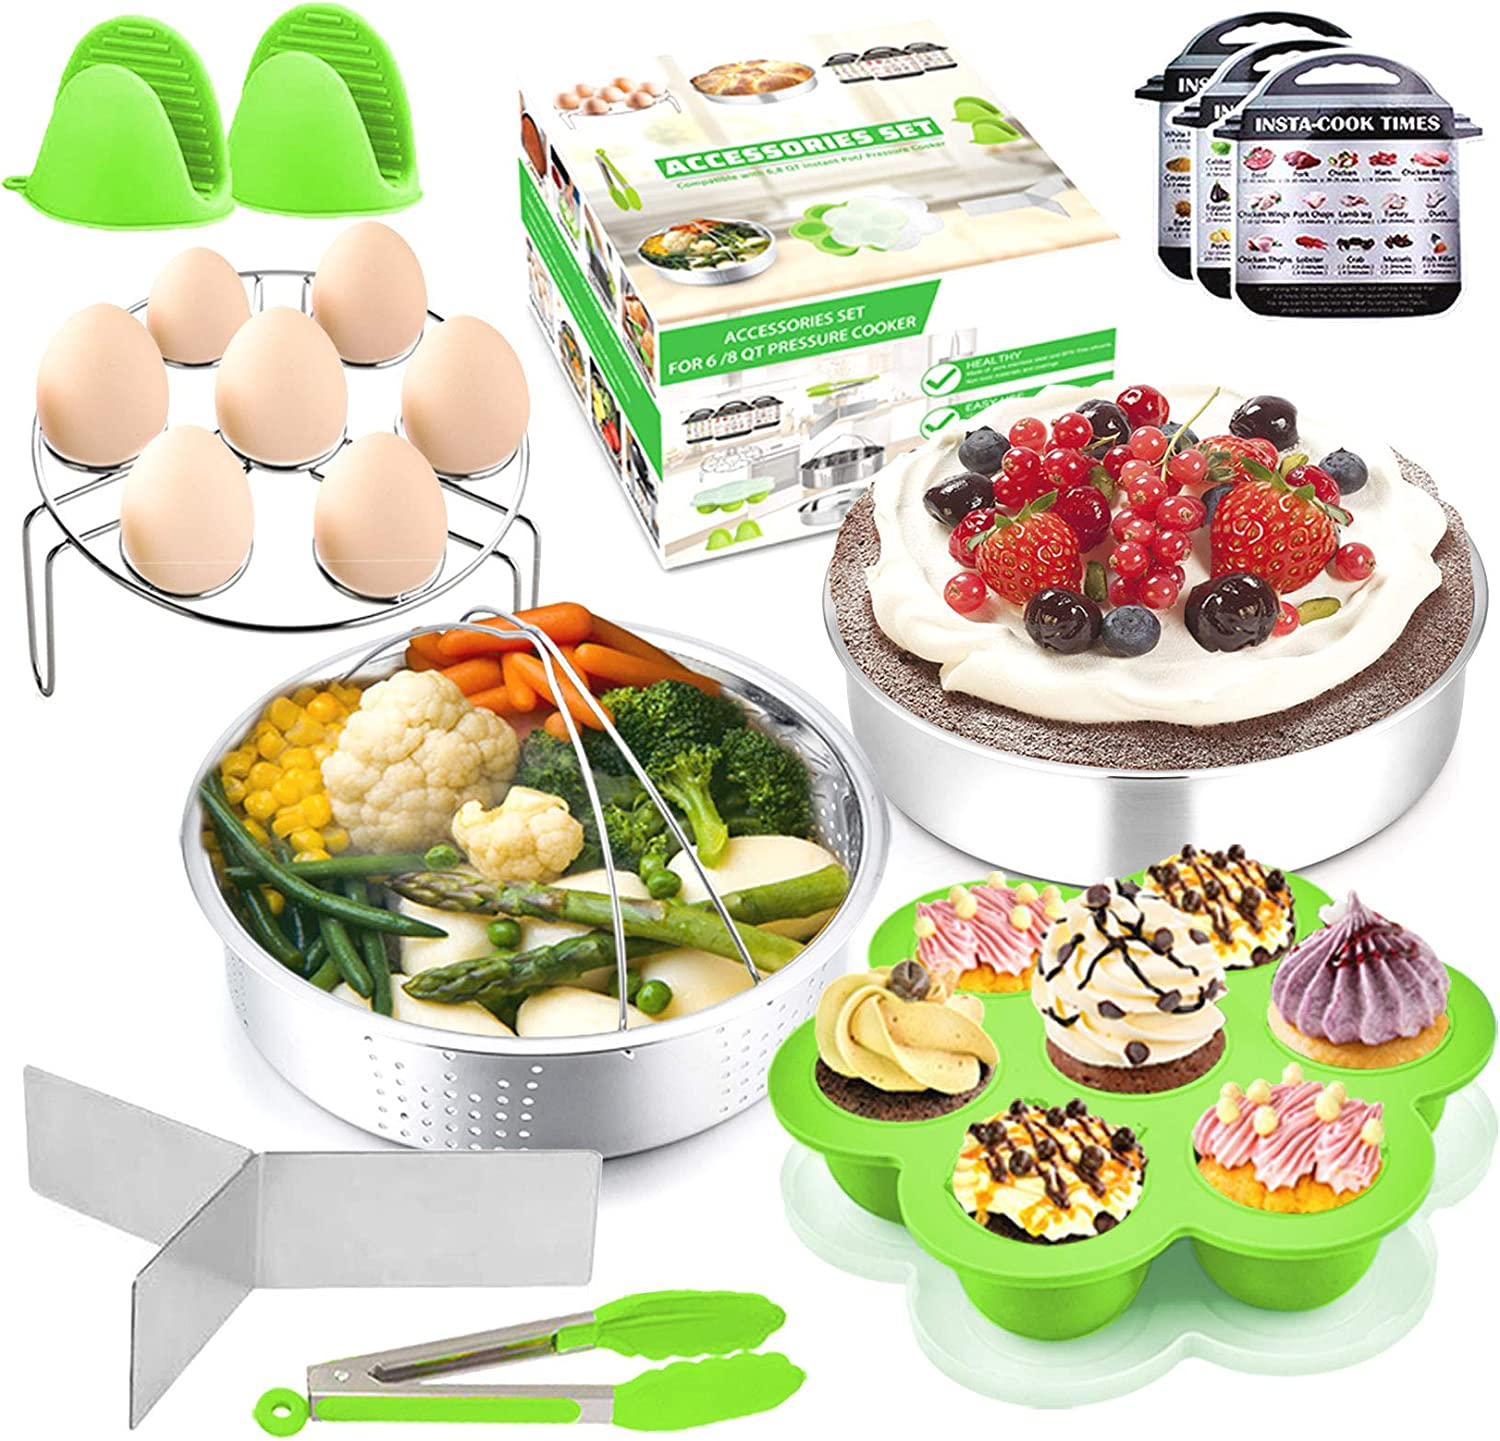 Pressure Cooker Accessories, P&P CHEF 12 Pcs Green Steamer Accessory Set For 6 / 8 Qt - Steamer Basket, Cake Pan, Egg Rack, Egg Bites Mold with Lid, Kitchen Tong, Oven Mitts, Magnetic Cheat Sheets